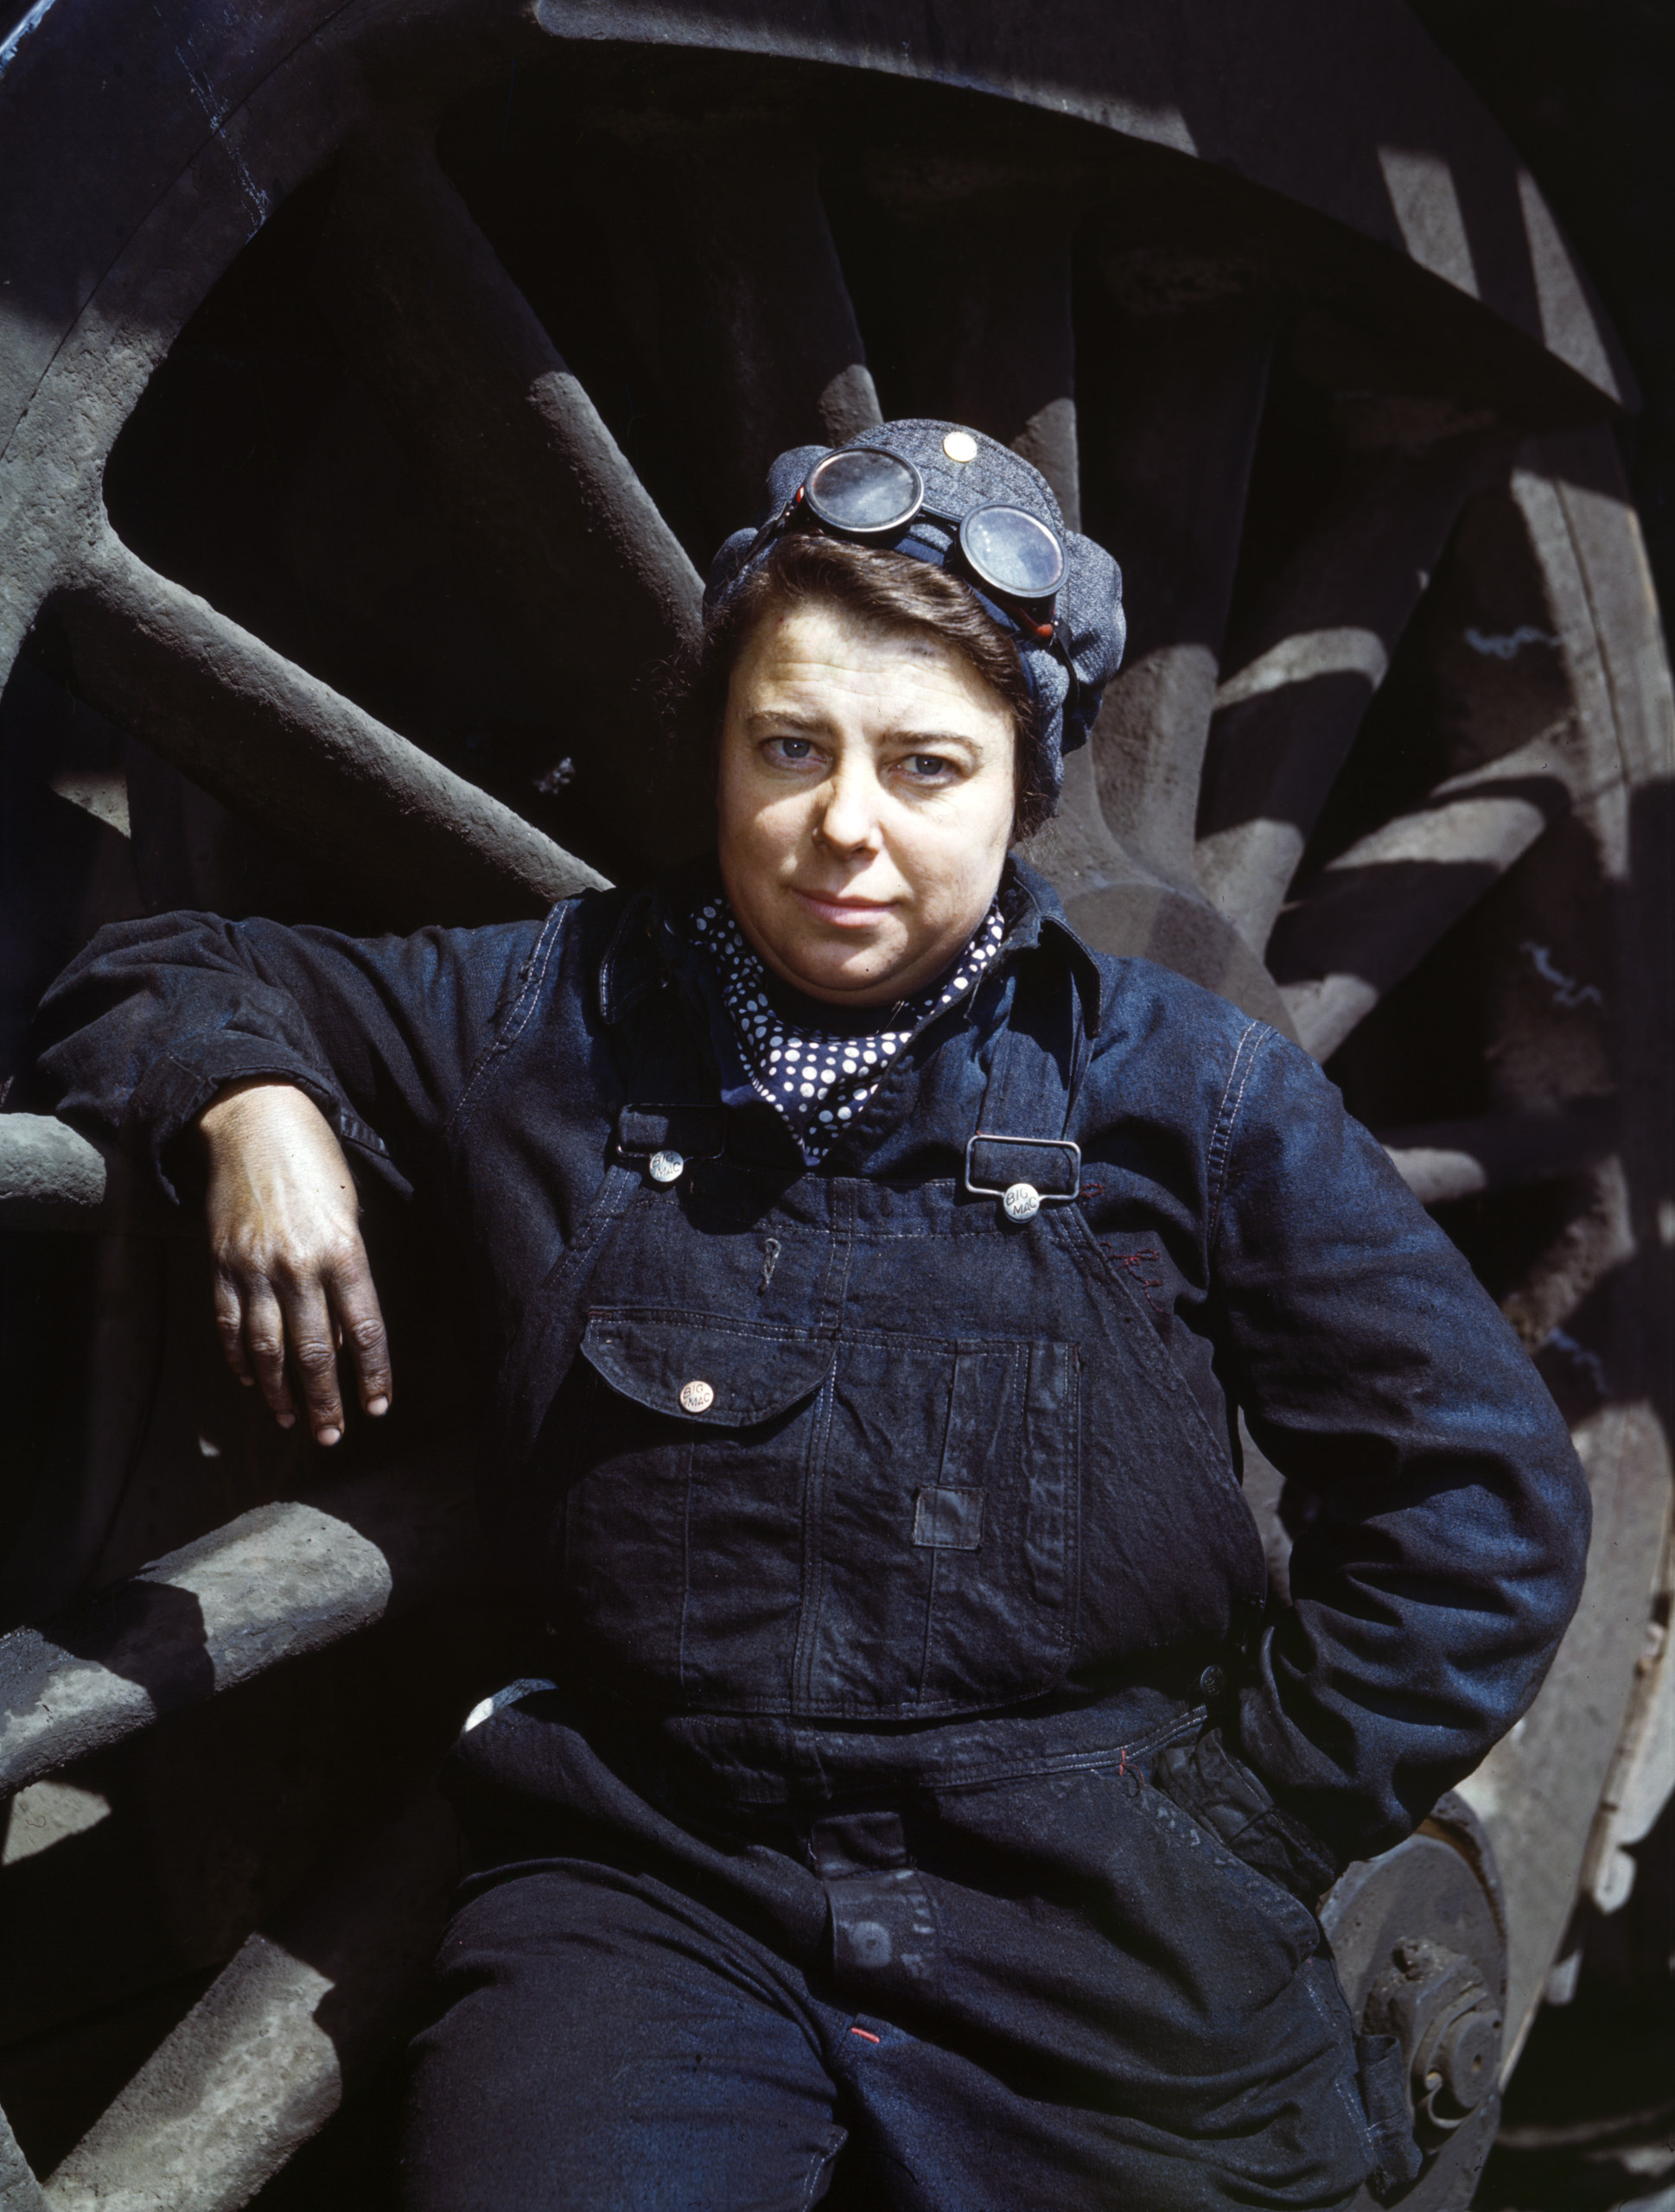 Chicago and North Western Railway Company, Mrs. Dorothy Lucke, employed as a wiper at the roundhouse, Clinton, Iowa, April 1943. Photographed by Jack Delano for the Farm Security Administration.